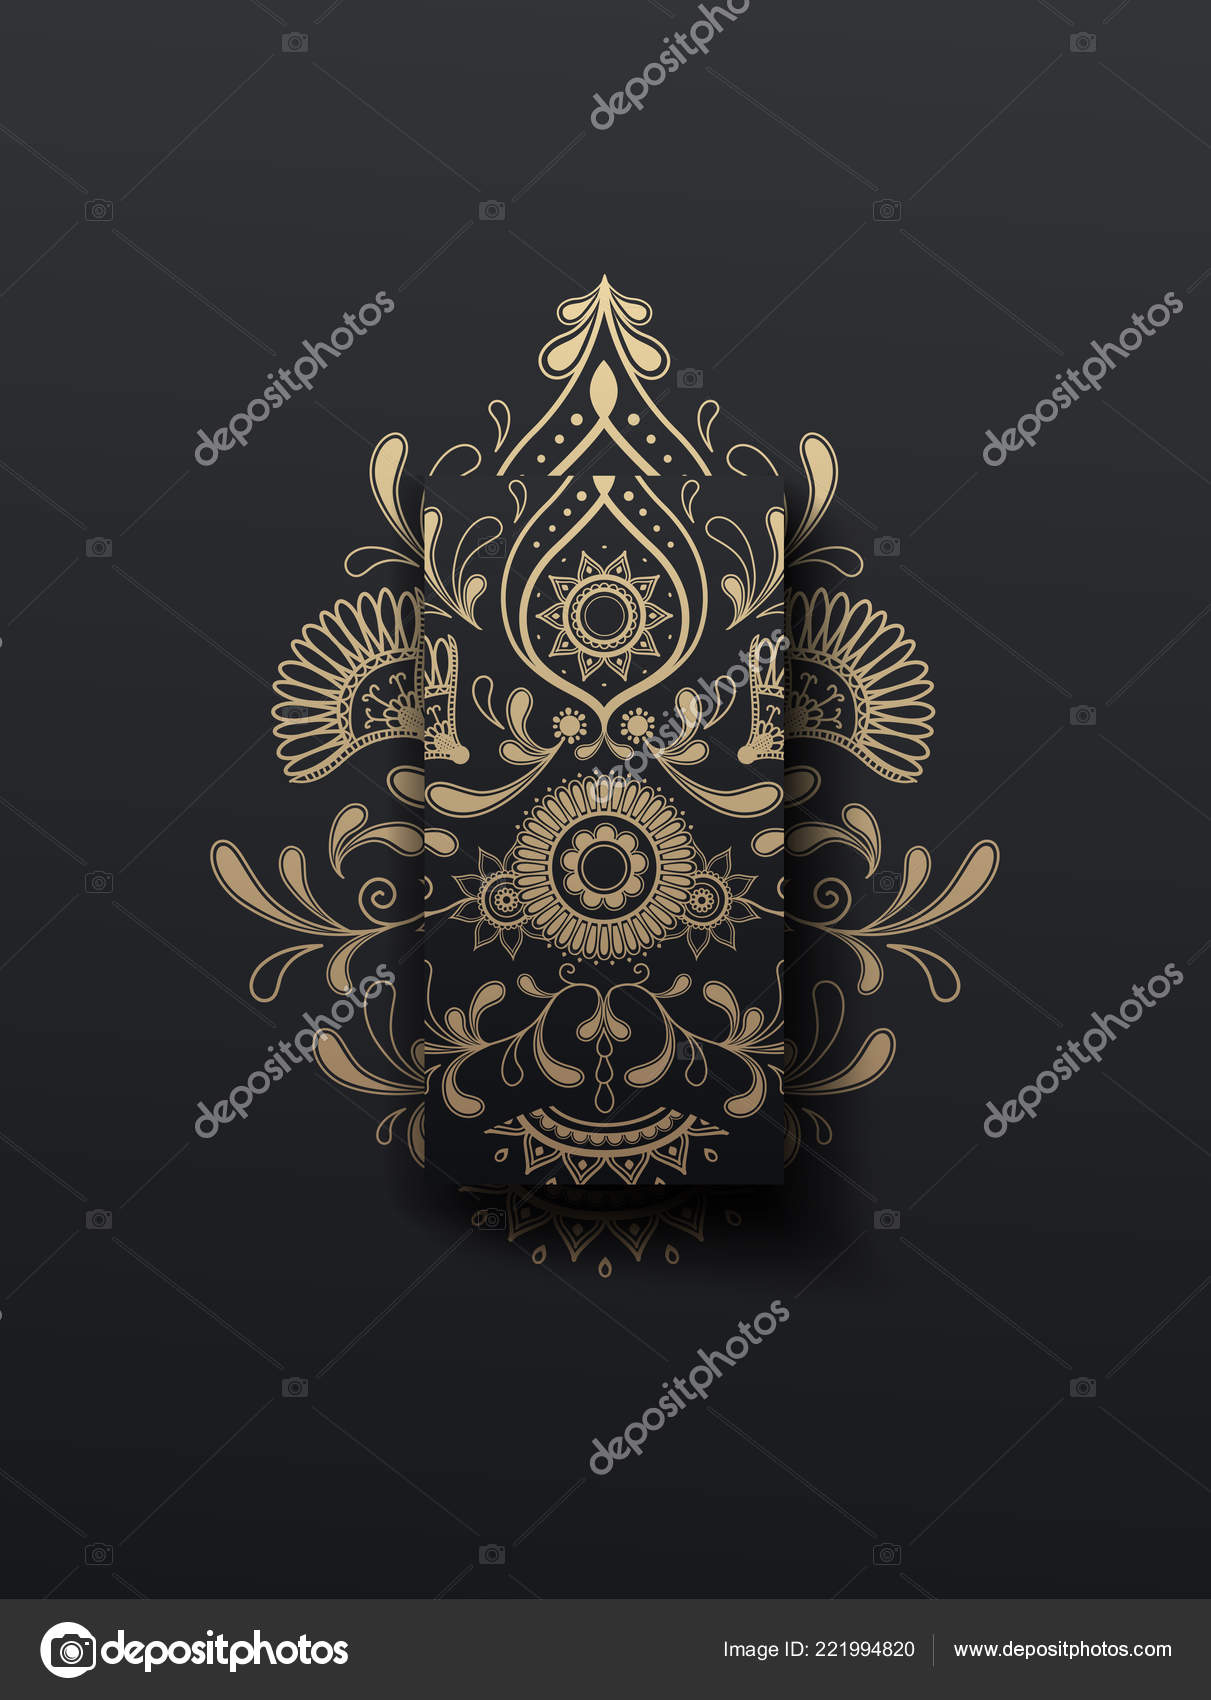 Golden Floral Paisley Vector Illustrator Ornament Mobile Phone